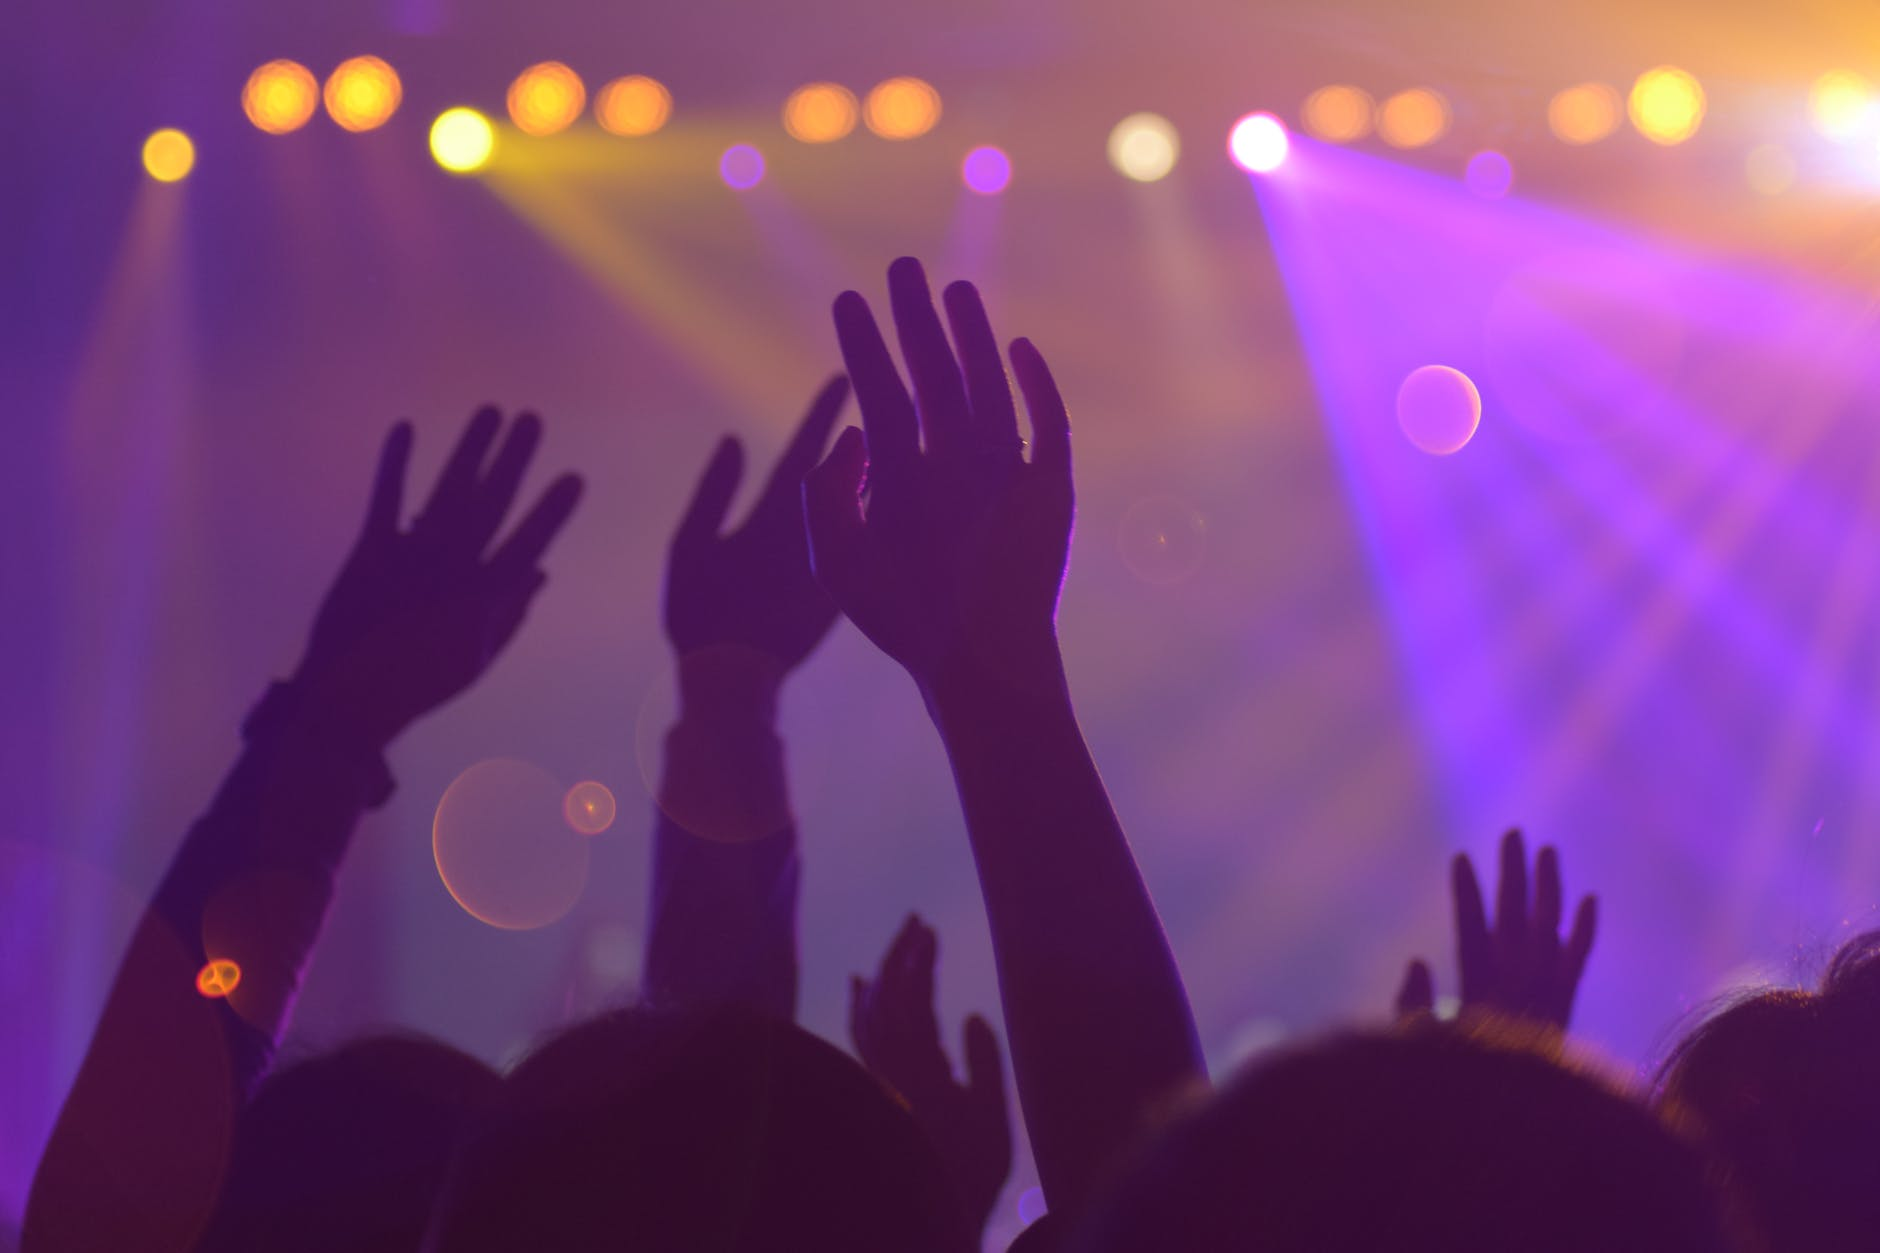 Hands raised up and lights displayed at a party or event